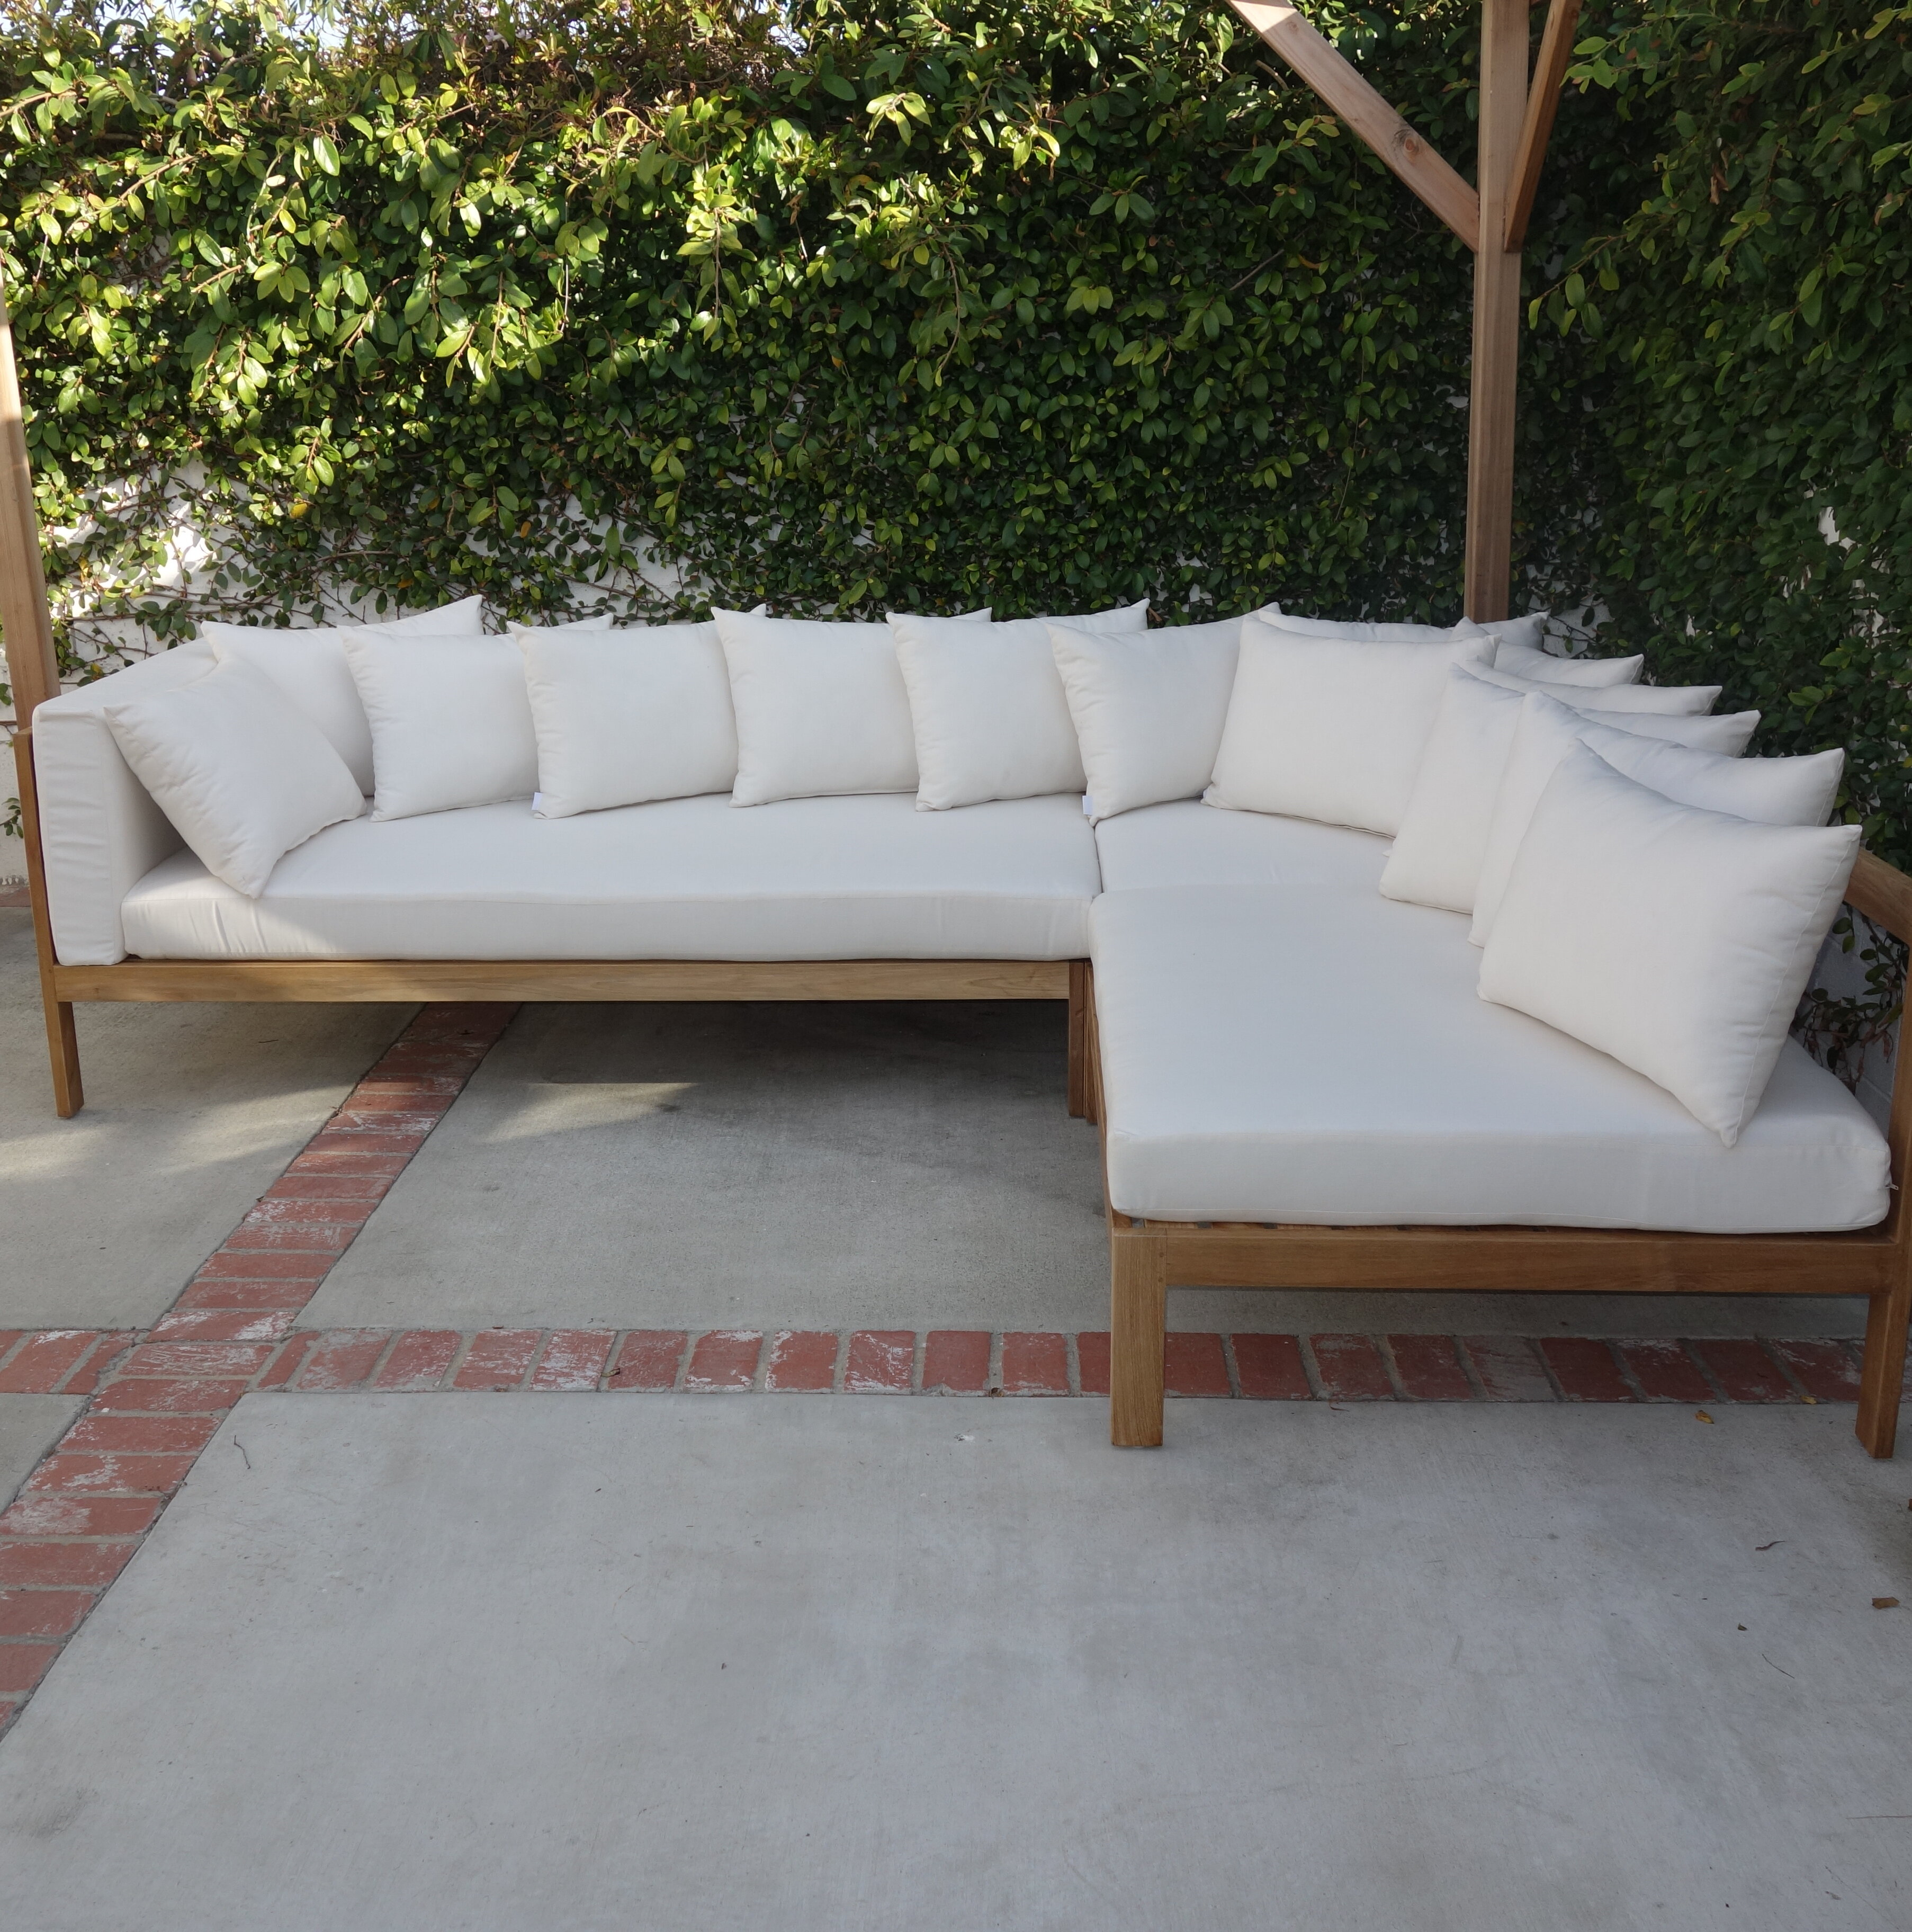 Jerrie Patio Sectional with Sunbrella Cushions